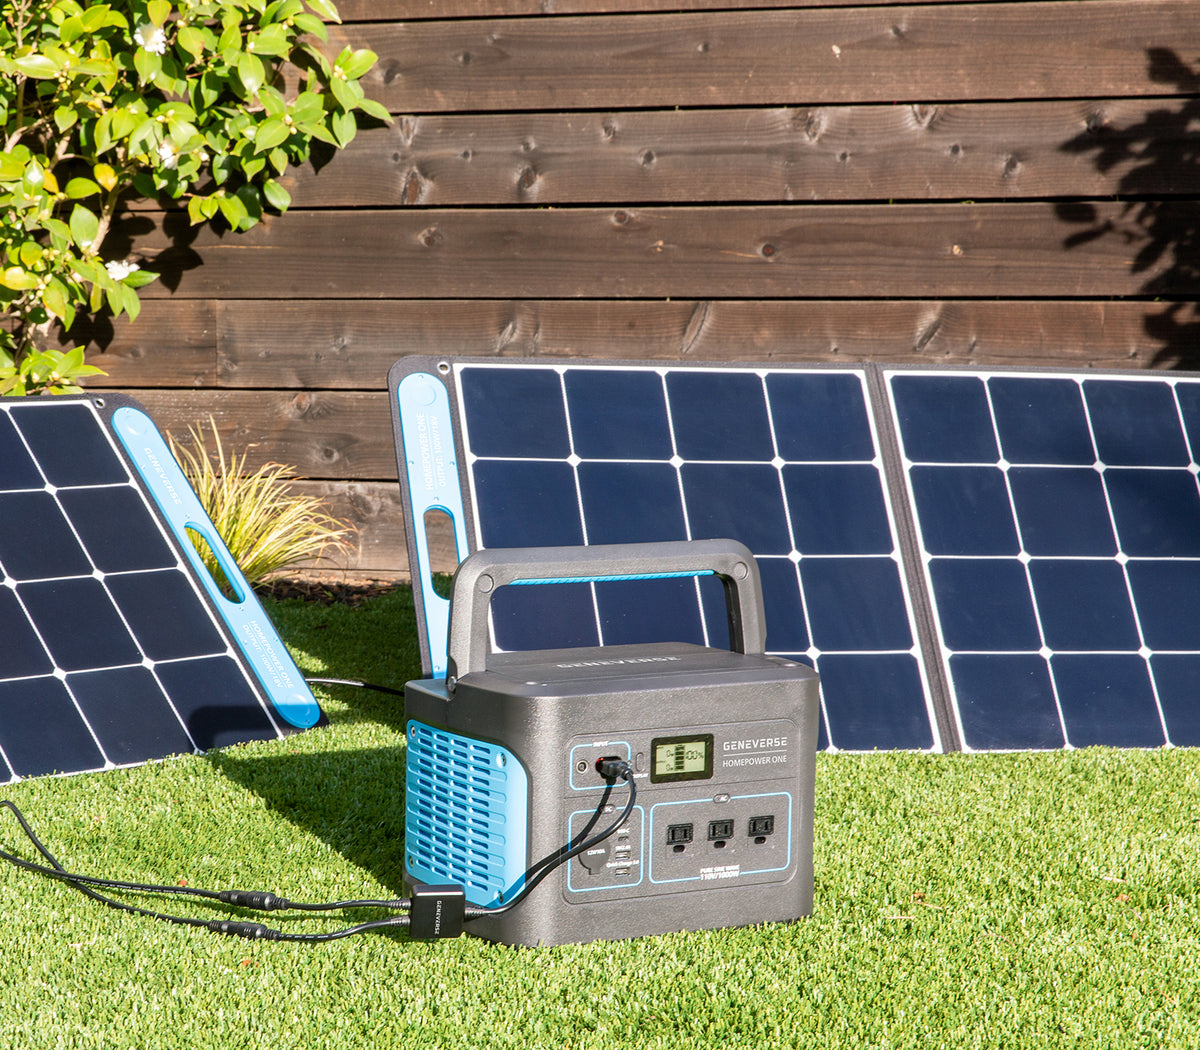 SolarPower ONE: Solar Panel Power Generator